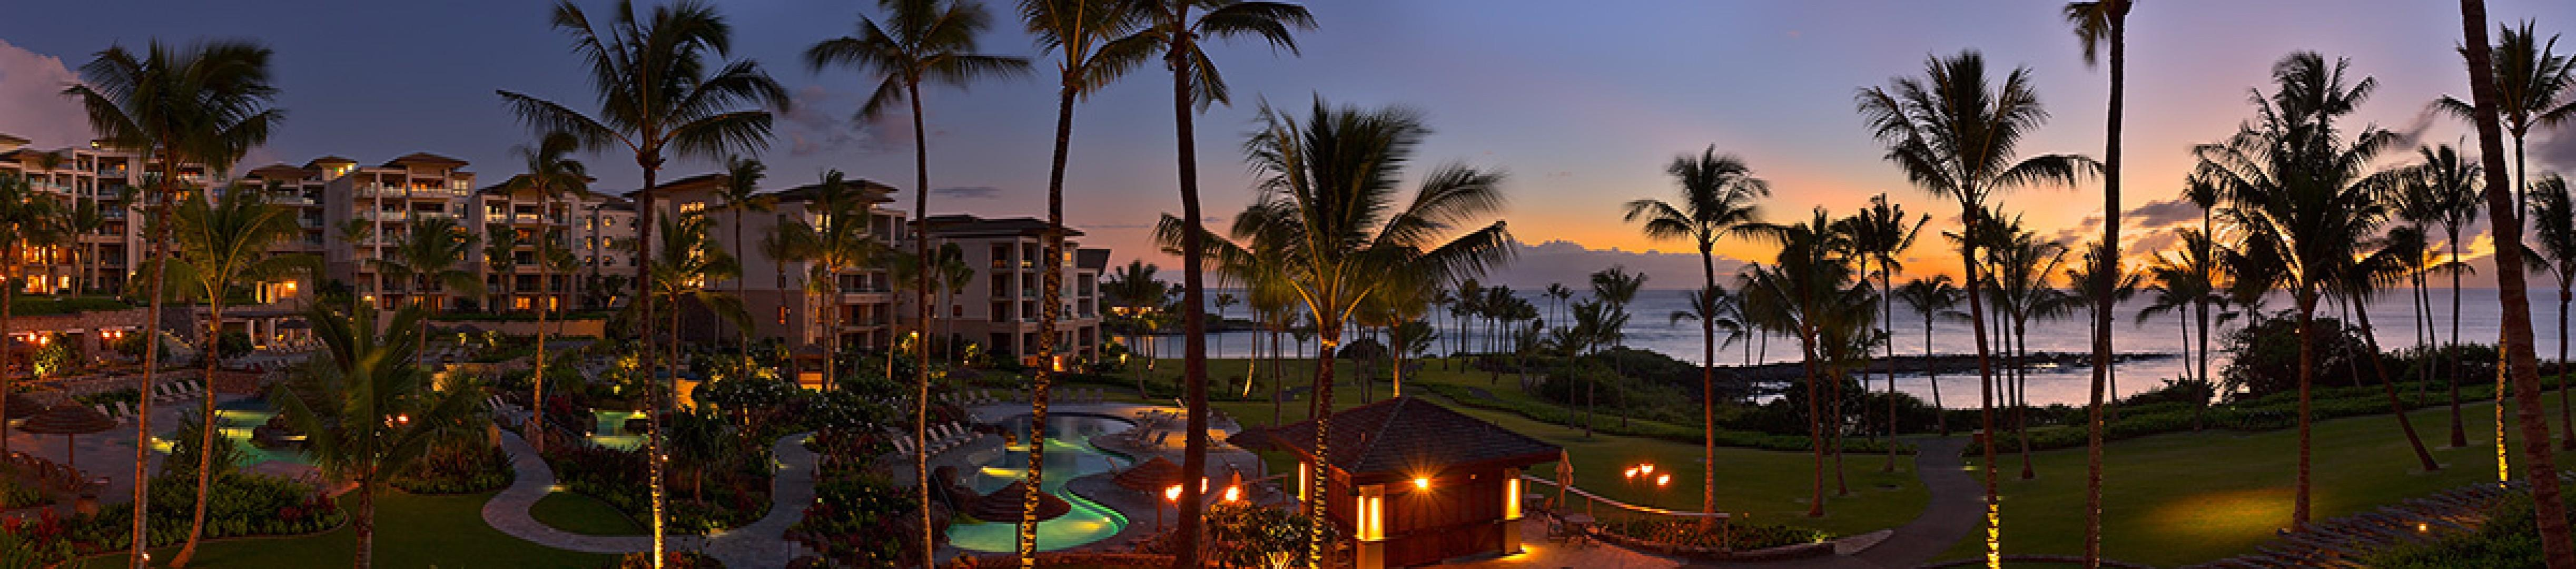 Panoramic Views From Pools to Ocean at Sunset